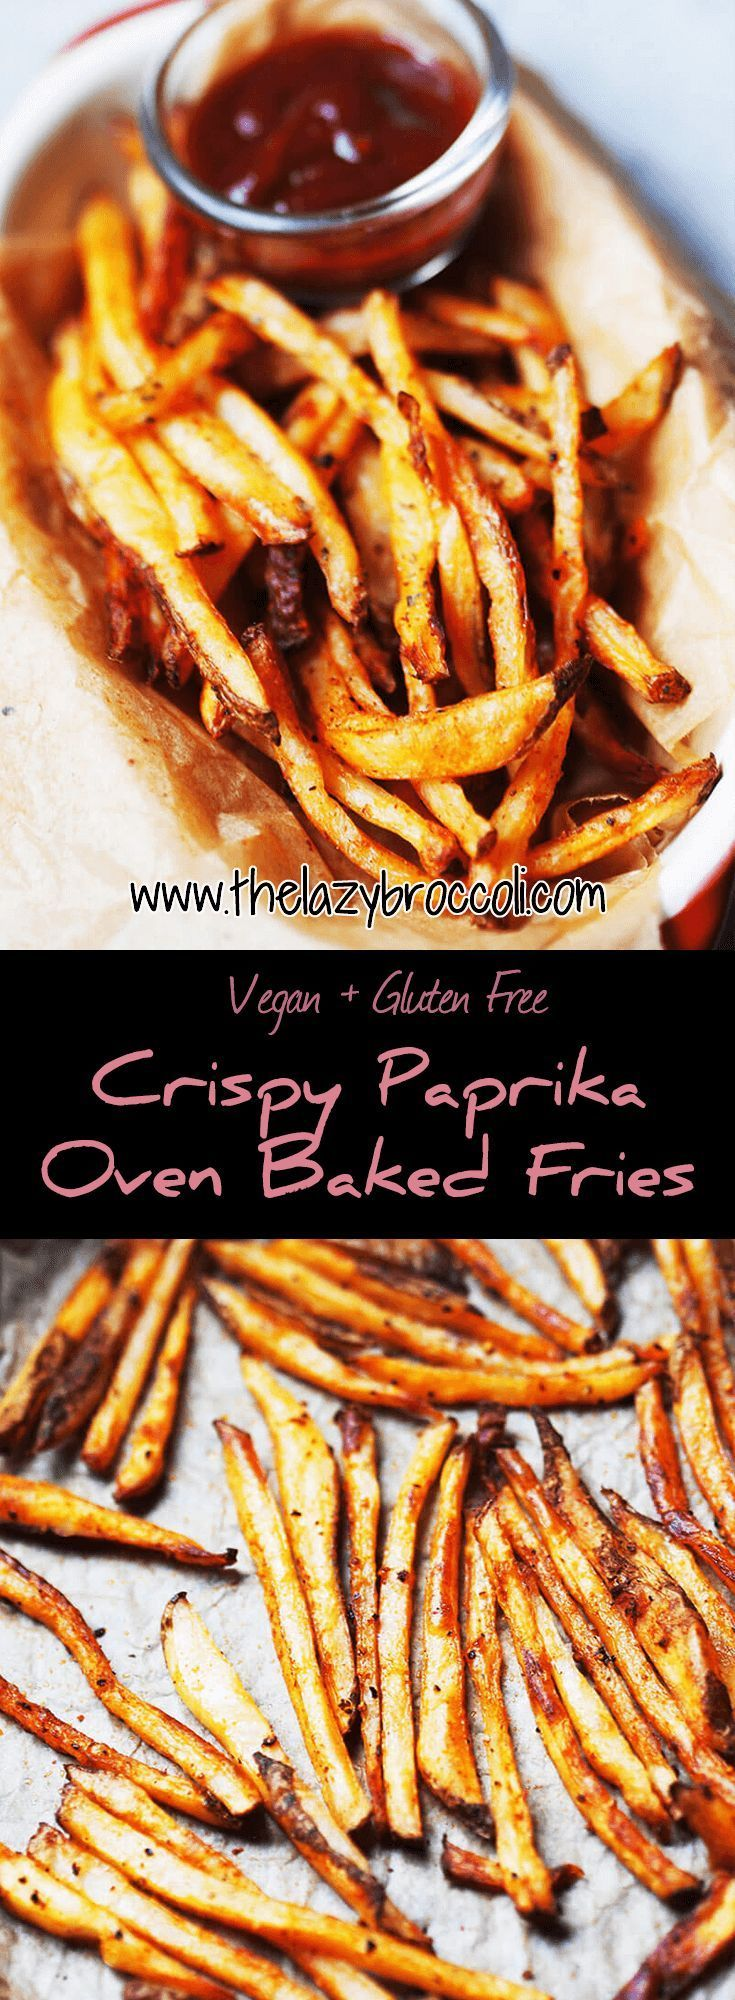 This Crispy Paprika Oven Baked Fries is both crispy and smoky - doesn't that sound just awesome? It's easy too, you just gotta make the oven work for you. Say goodbye to deep fry! #vegan #glutenfree #vegetarian #fries #oven #baked #roasted #recipe #food #noonionnogarlic #crispy #smoky